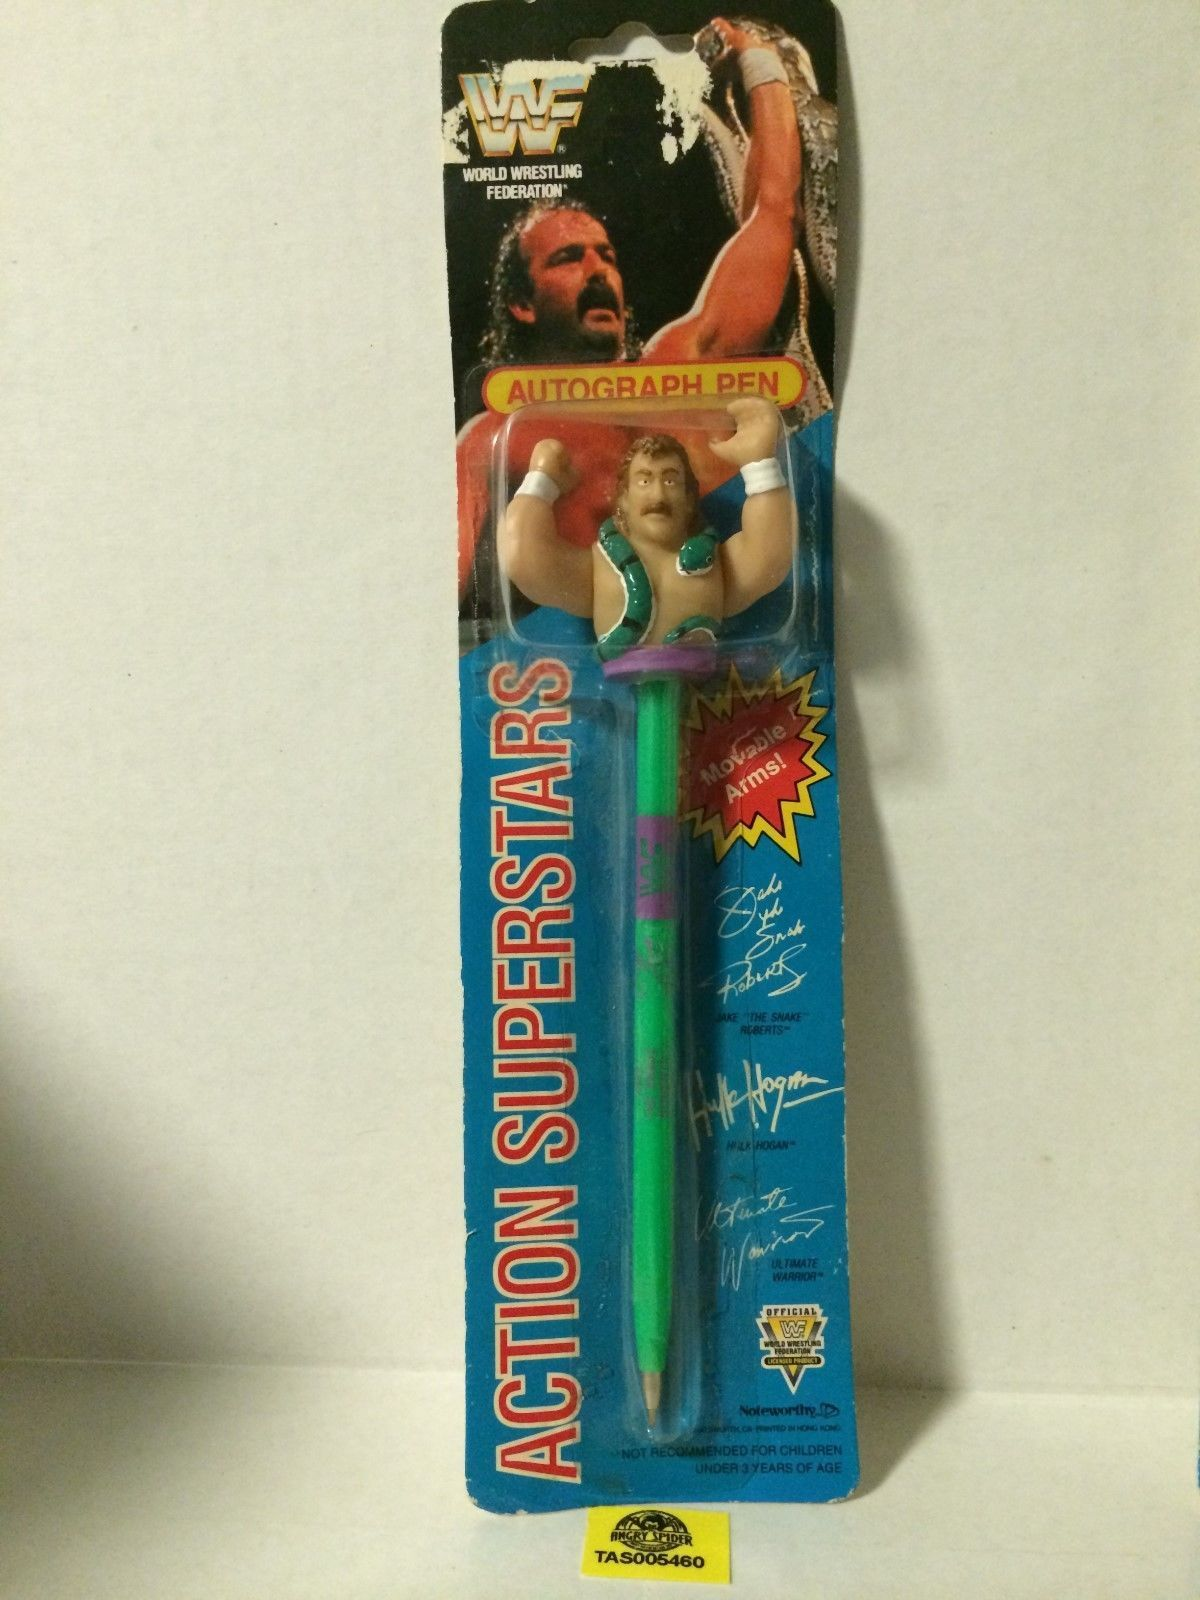 WWF Jake The Snake Roberts autogrpah action pen